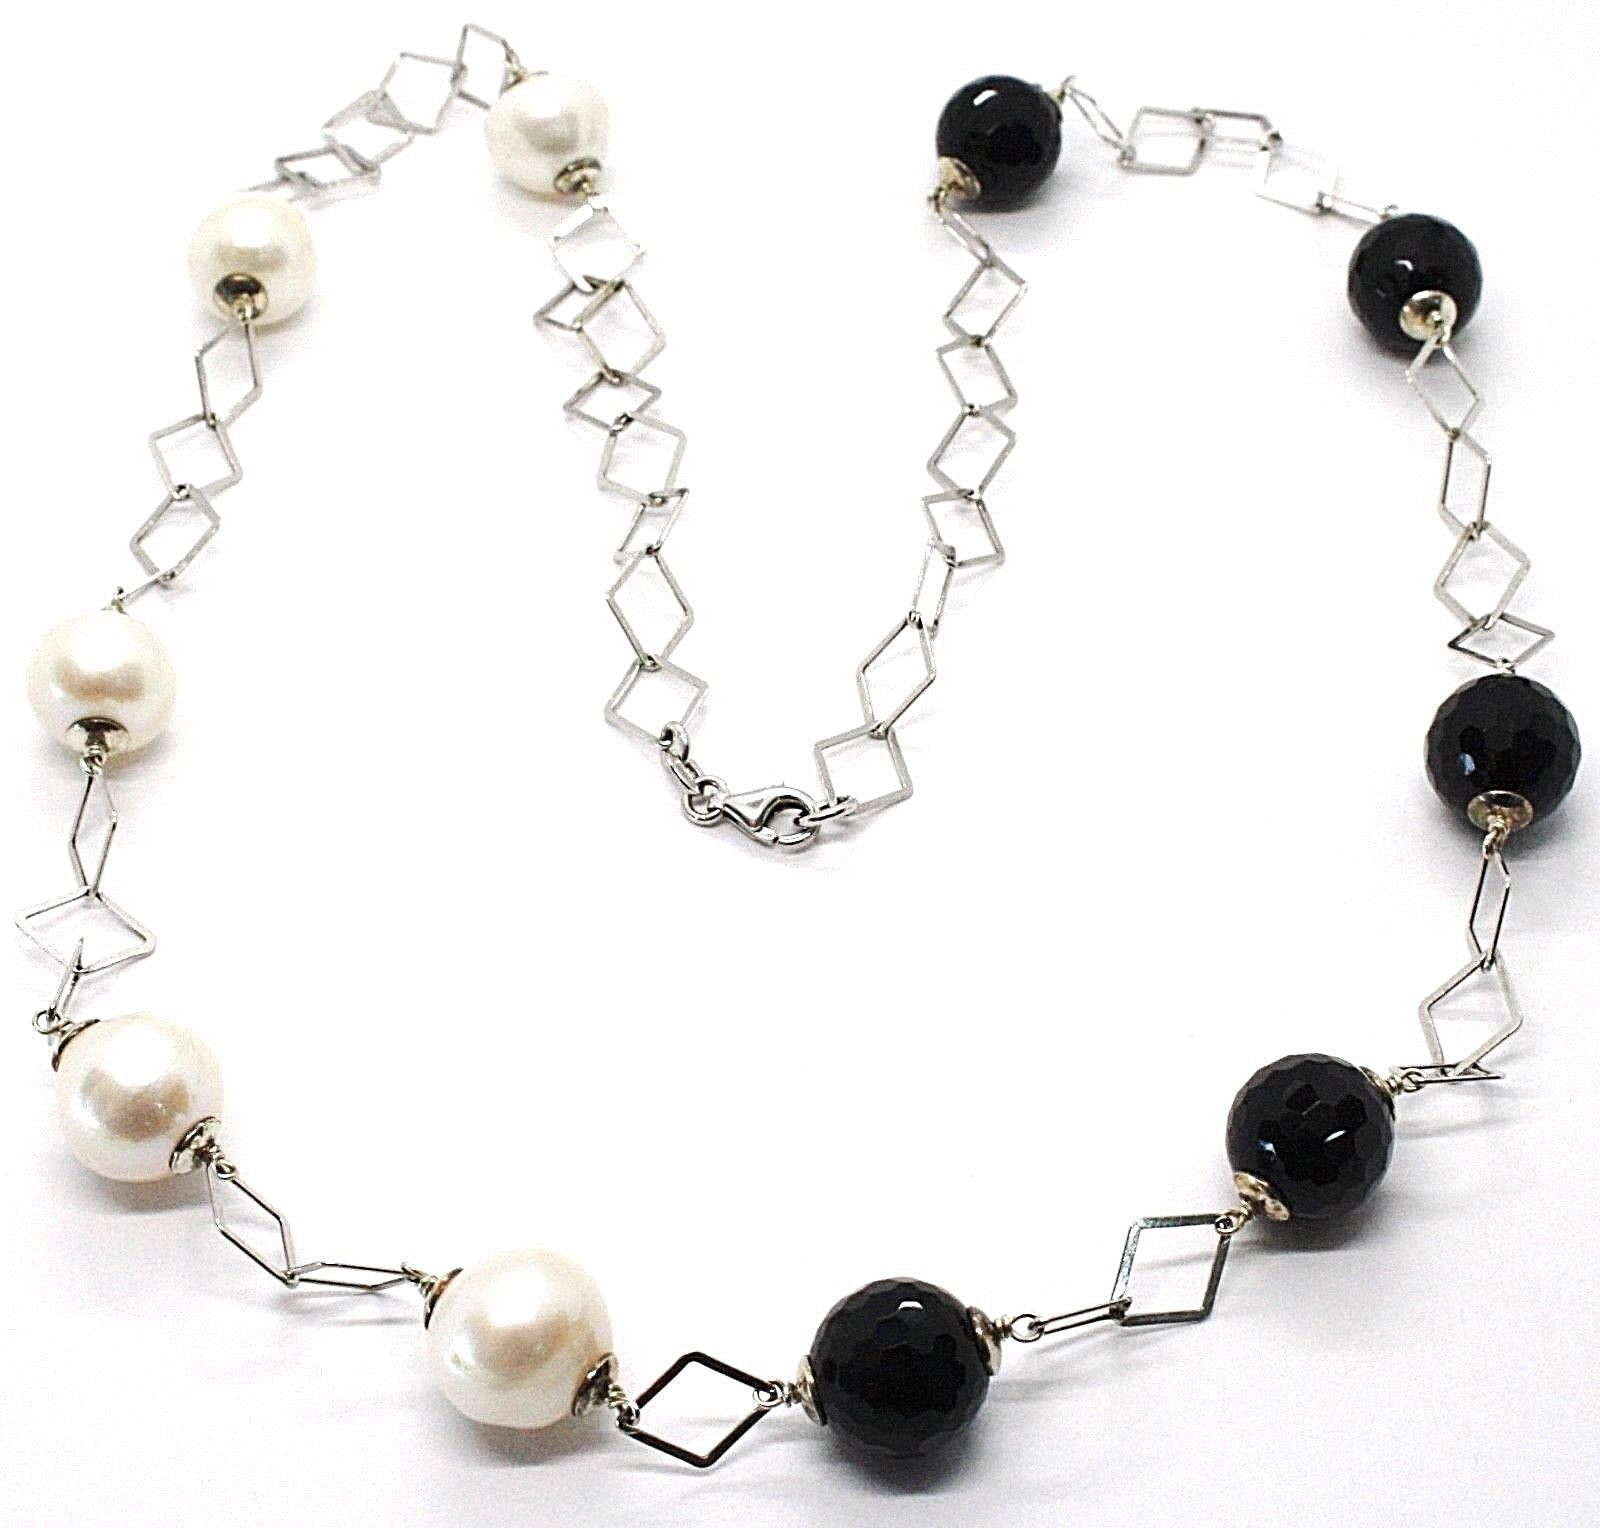 Silver necklace 925, Onyx Black Faceted, Pearls, 62 CM, Chain Diamonds